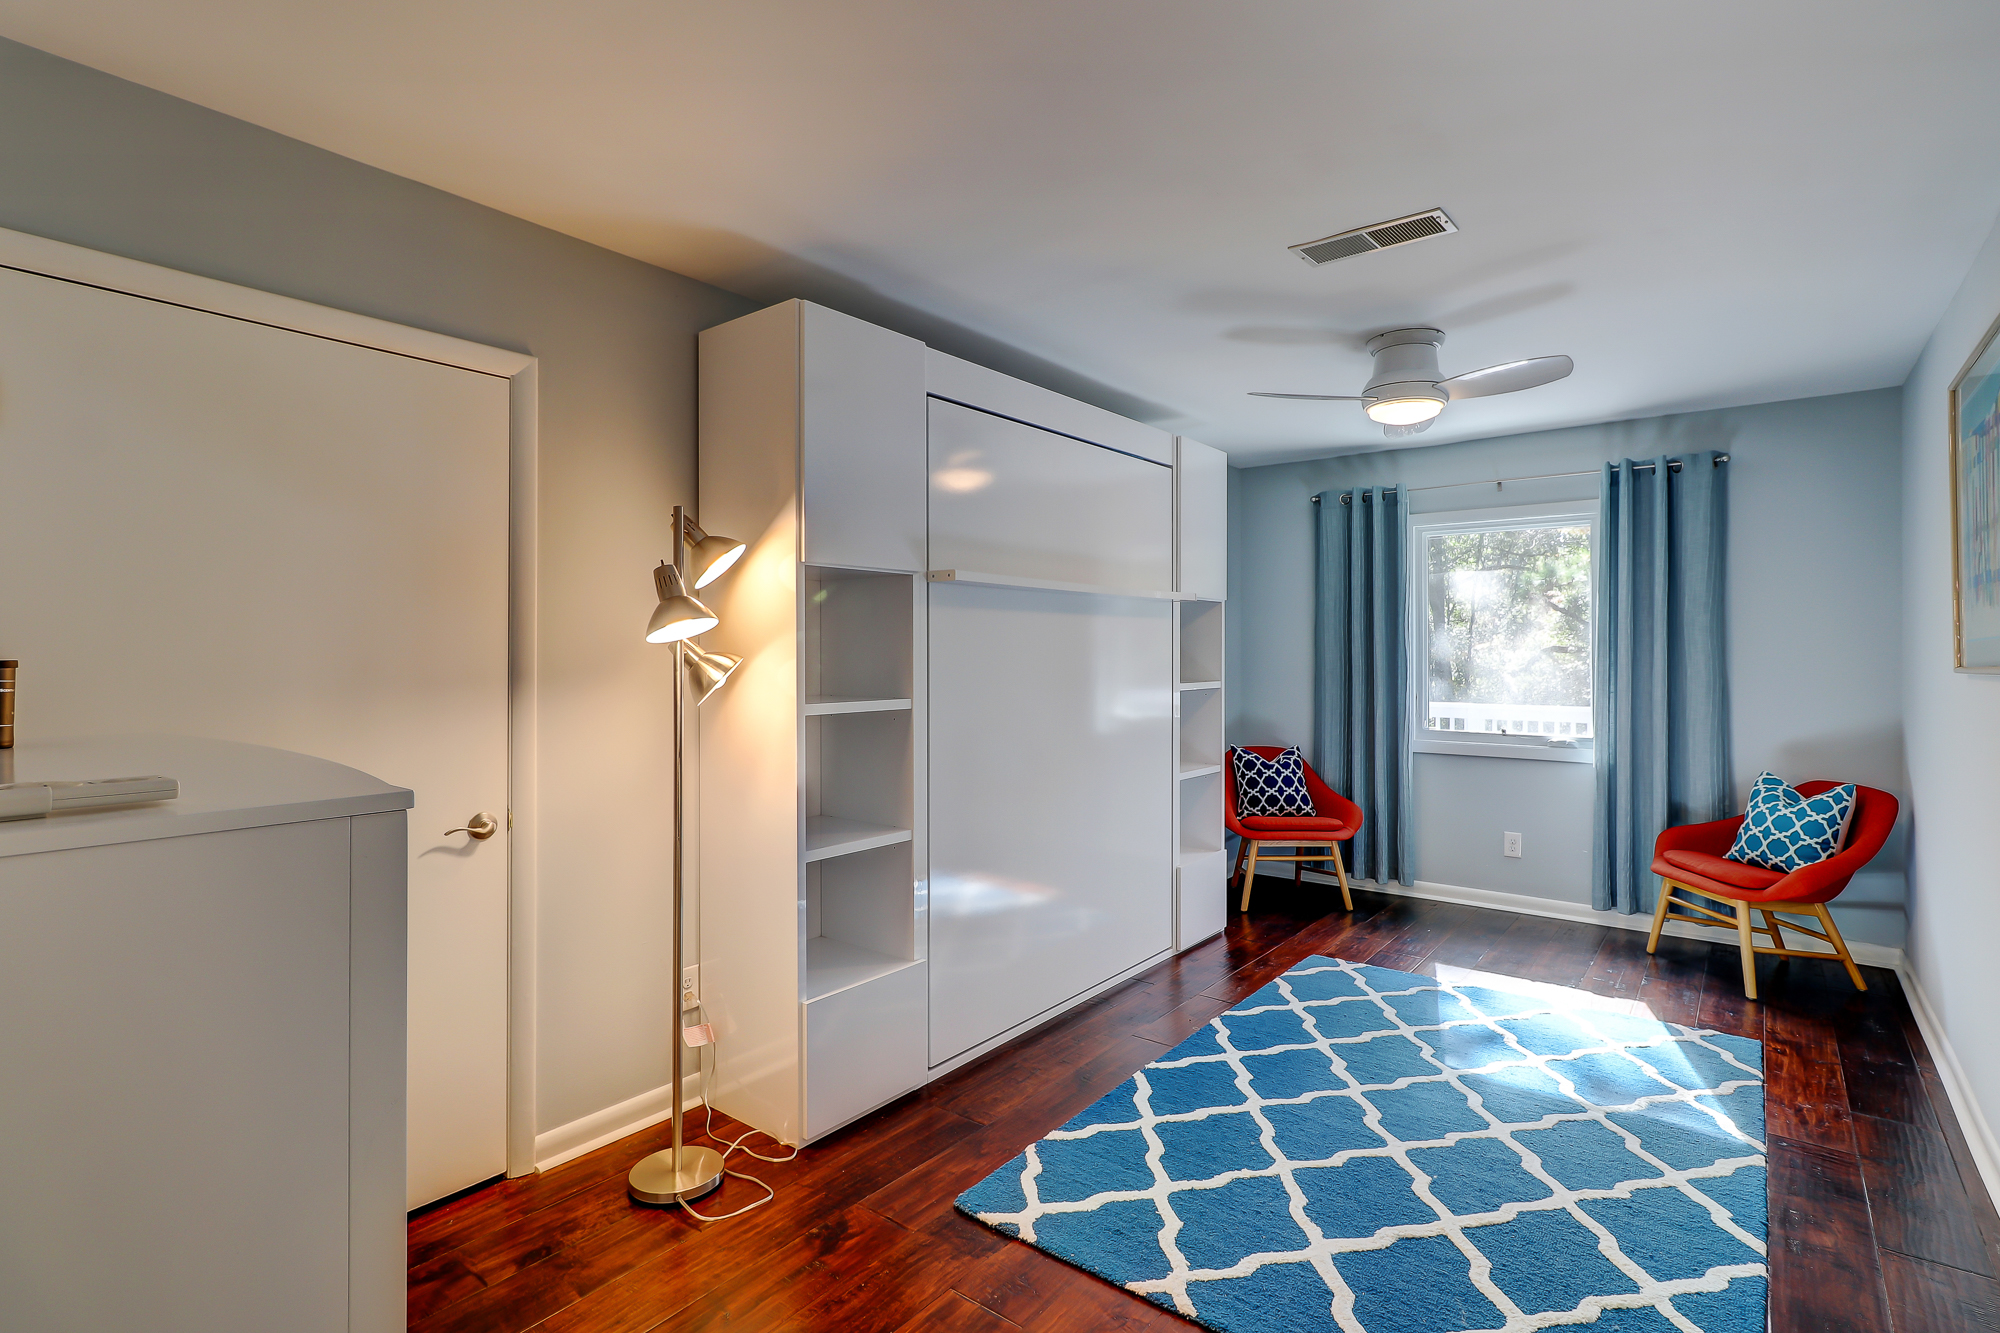 Murphy Bed closed. 8 Bradley Beach, Hilton Head Island, MLS# 388240